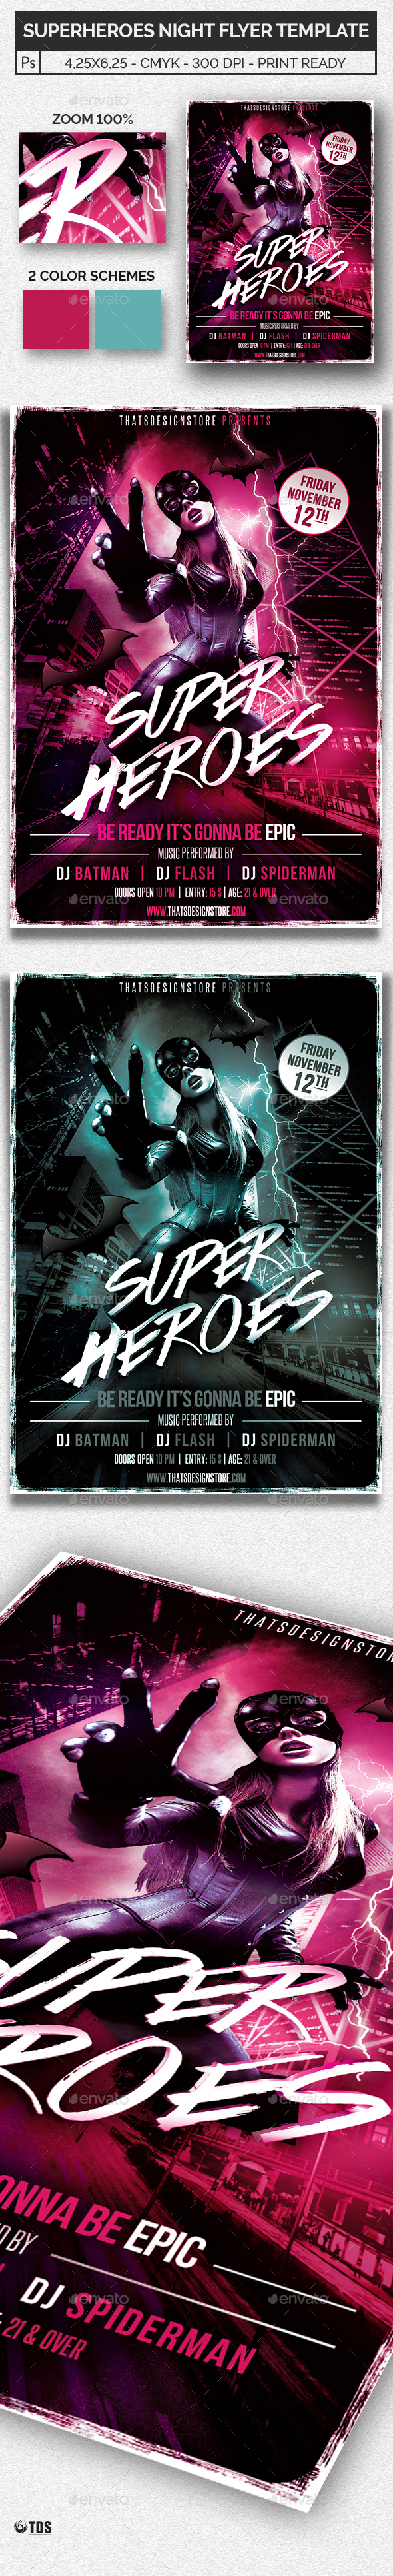 Superheroes Night Flyer Template - Clubs & Parties Events